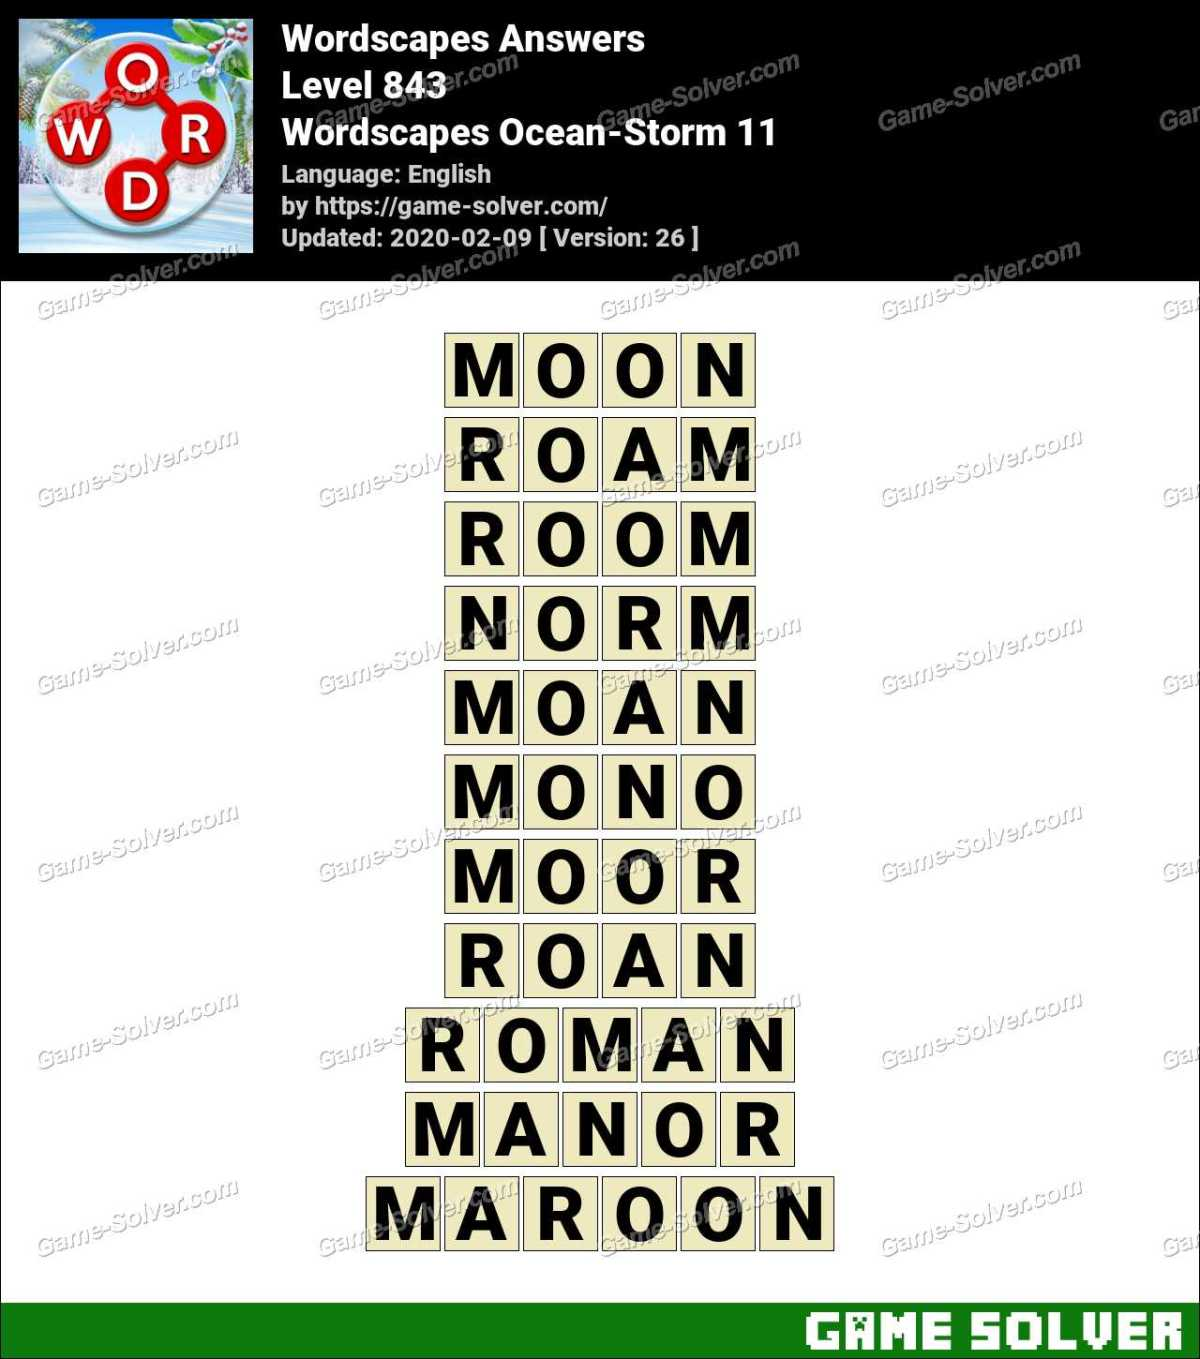 Wordscapes Ocean-Storm 11 Answers